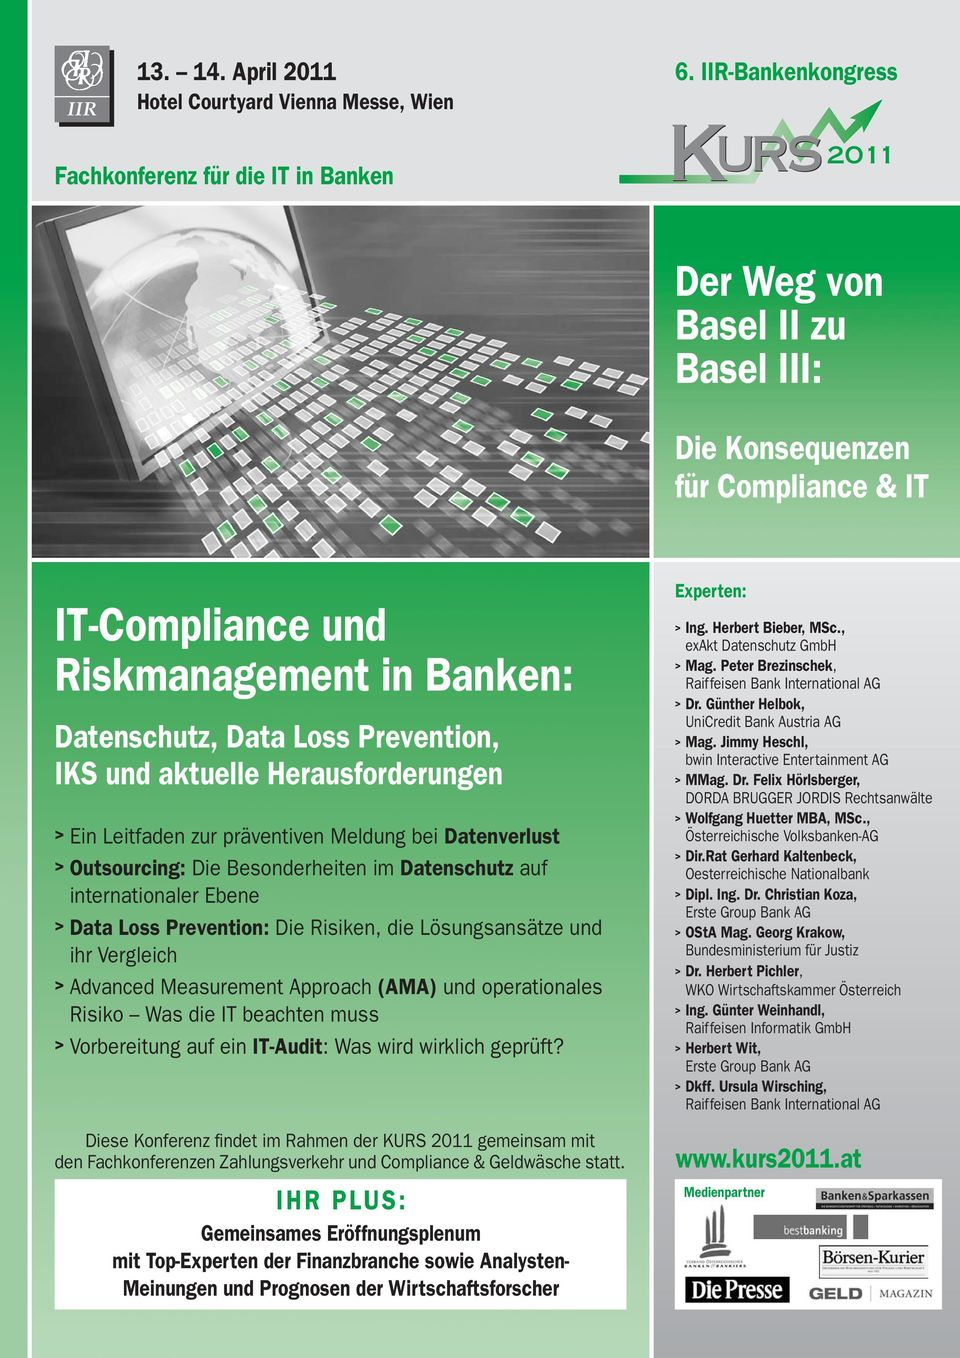 Riskmanagement in Banken: Datenschutz, Data Loss Prevention, IKS und aktuelle Herausforderungen > Ein Leitfaden zur präventiven Meldung bei Datenverlust > Outsourcing: Die Besonderheiten im